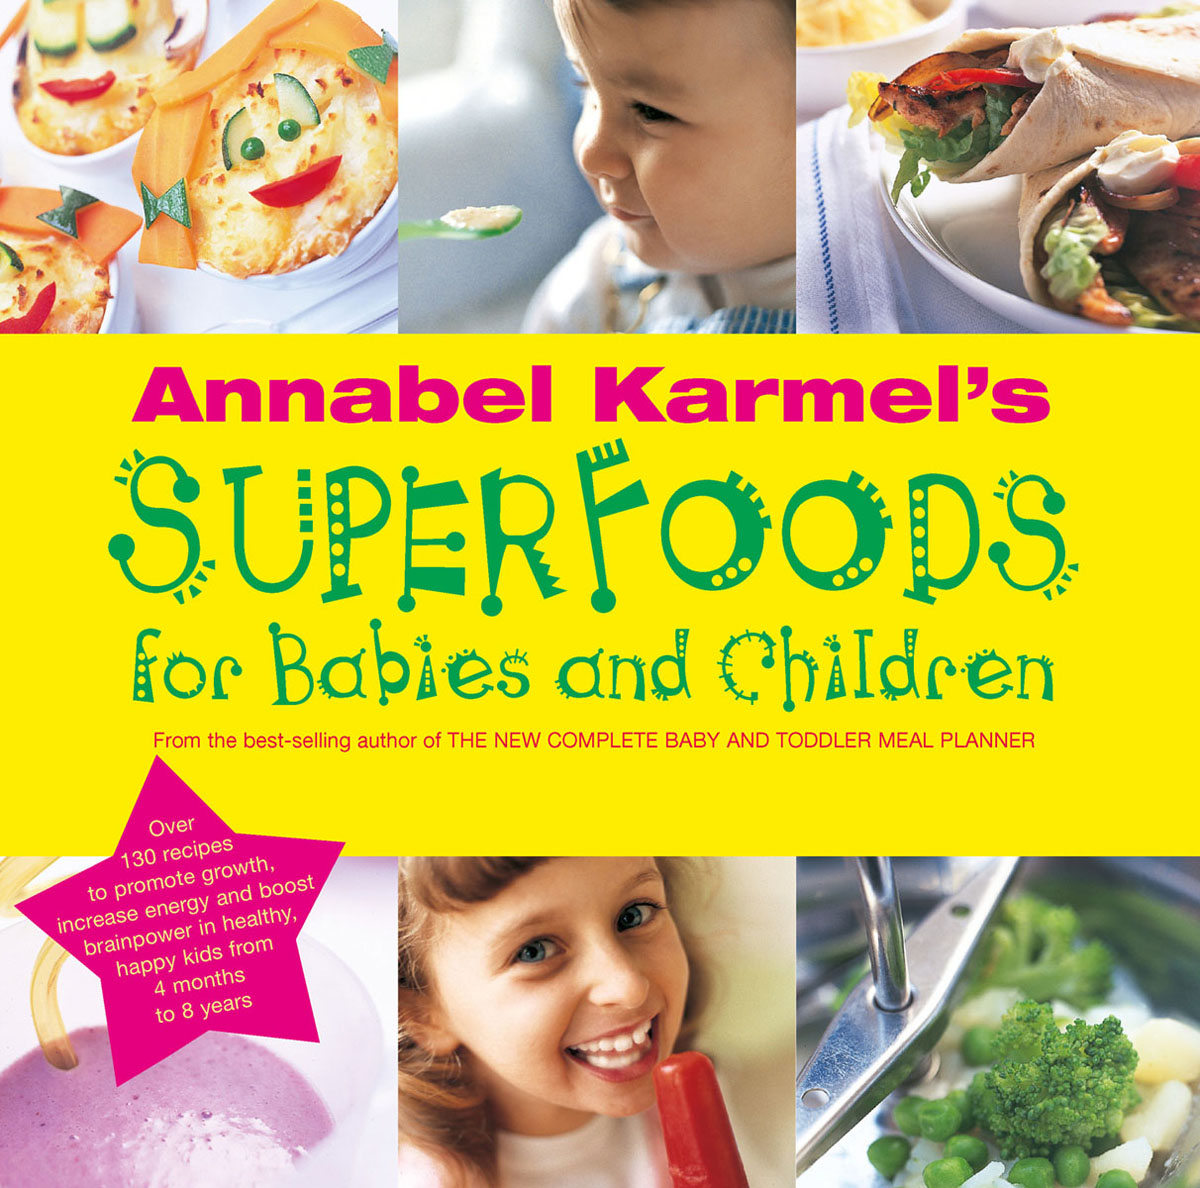 Annabel Karmel's Superfood For Babies And Children